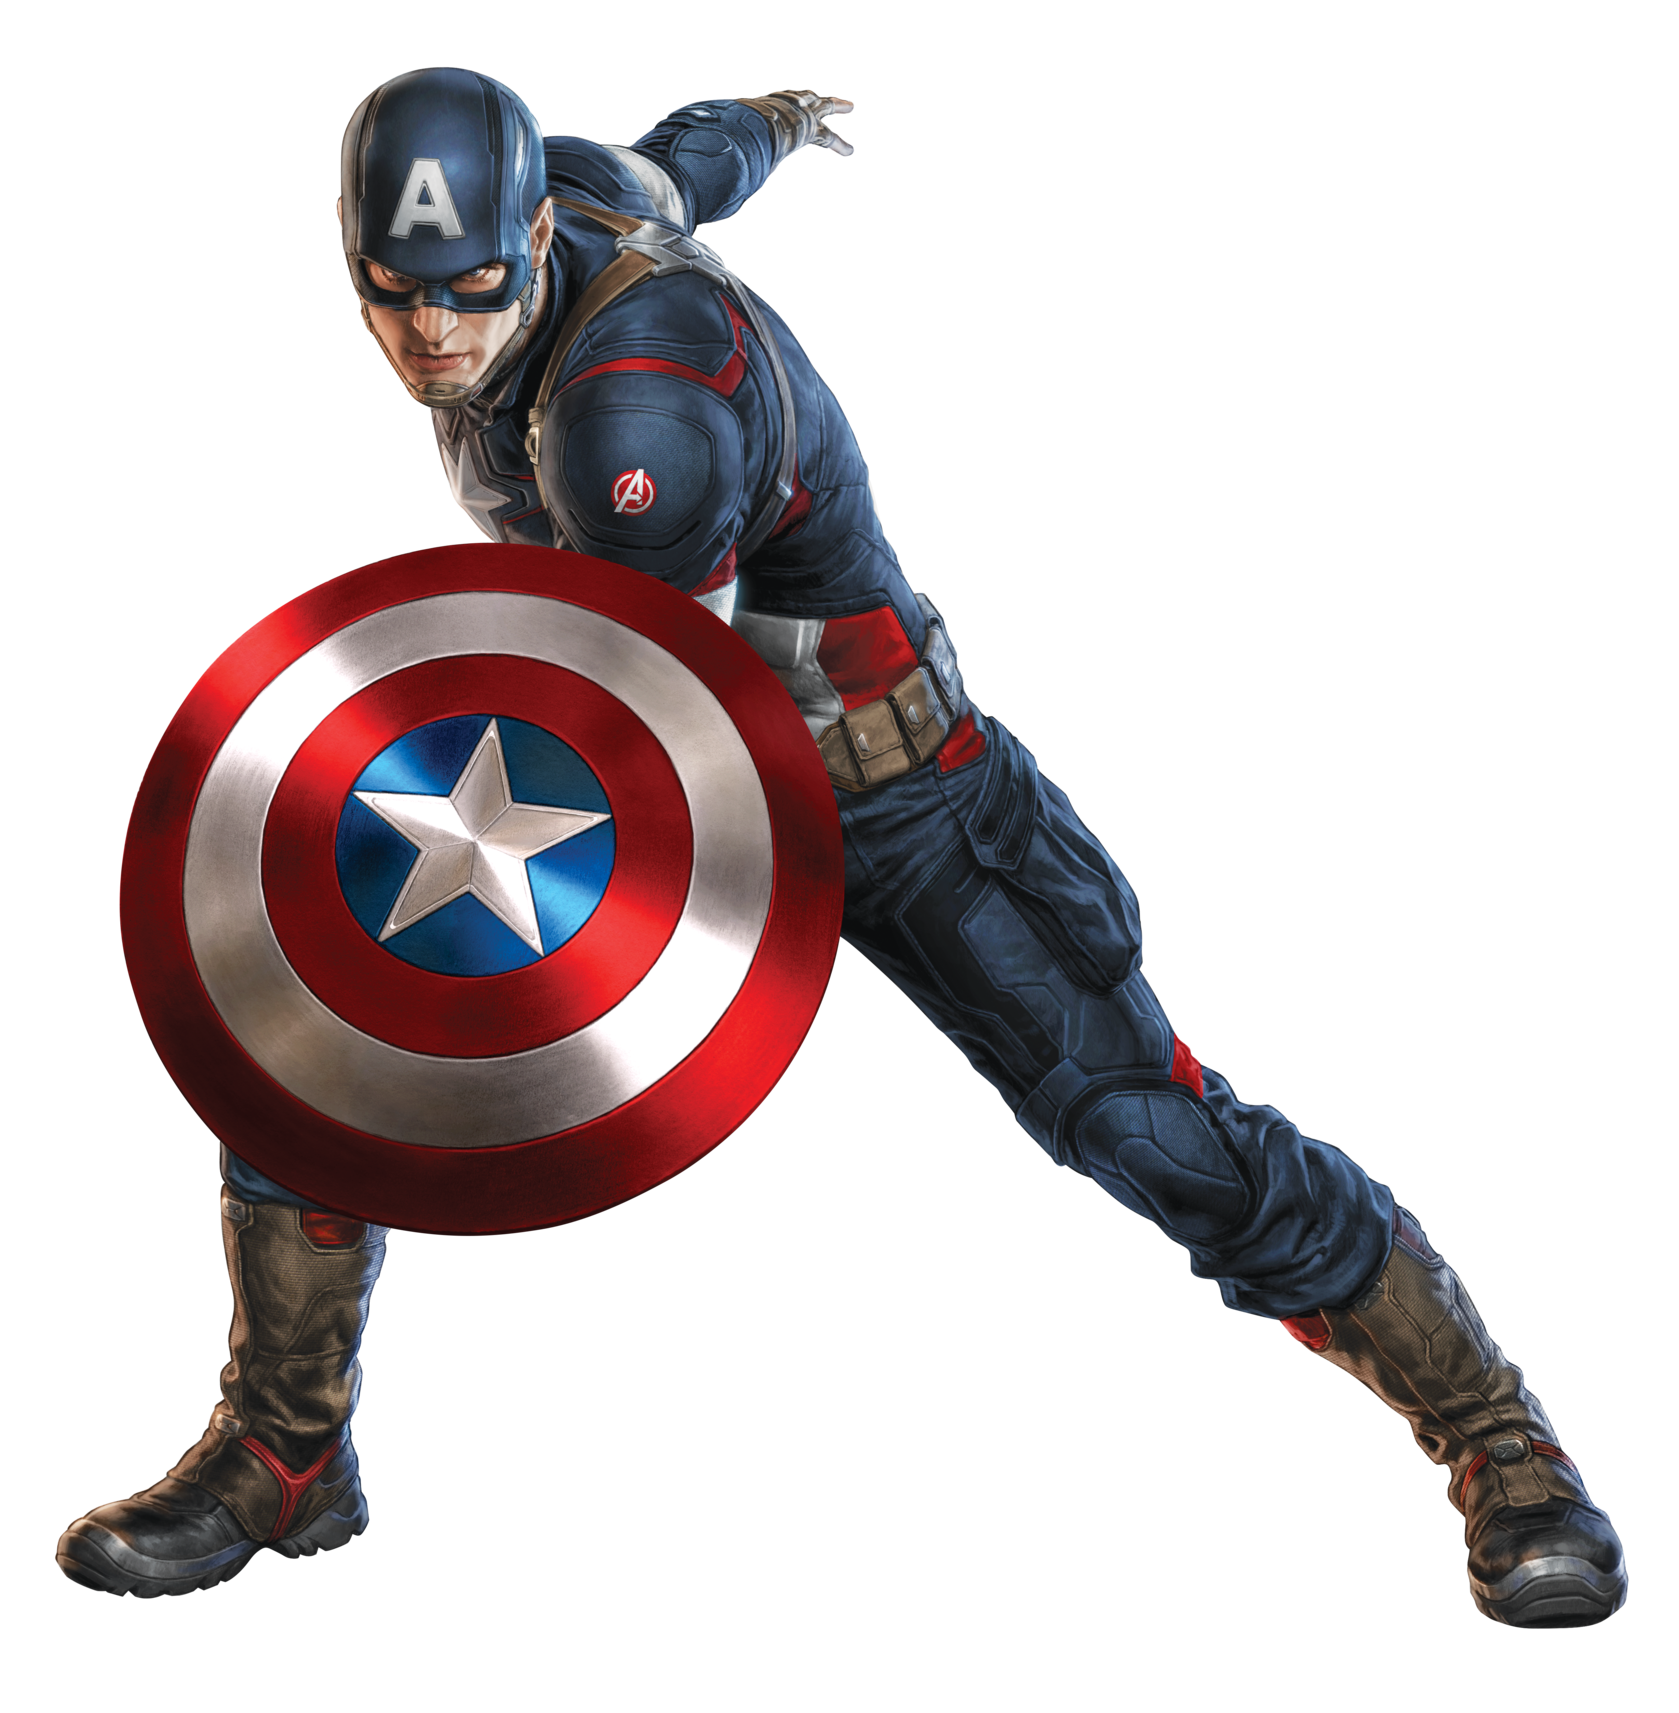 image aou captain america 2shield guard png marvel eye clinic clipart female eye doctor clipart